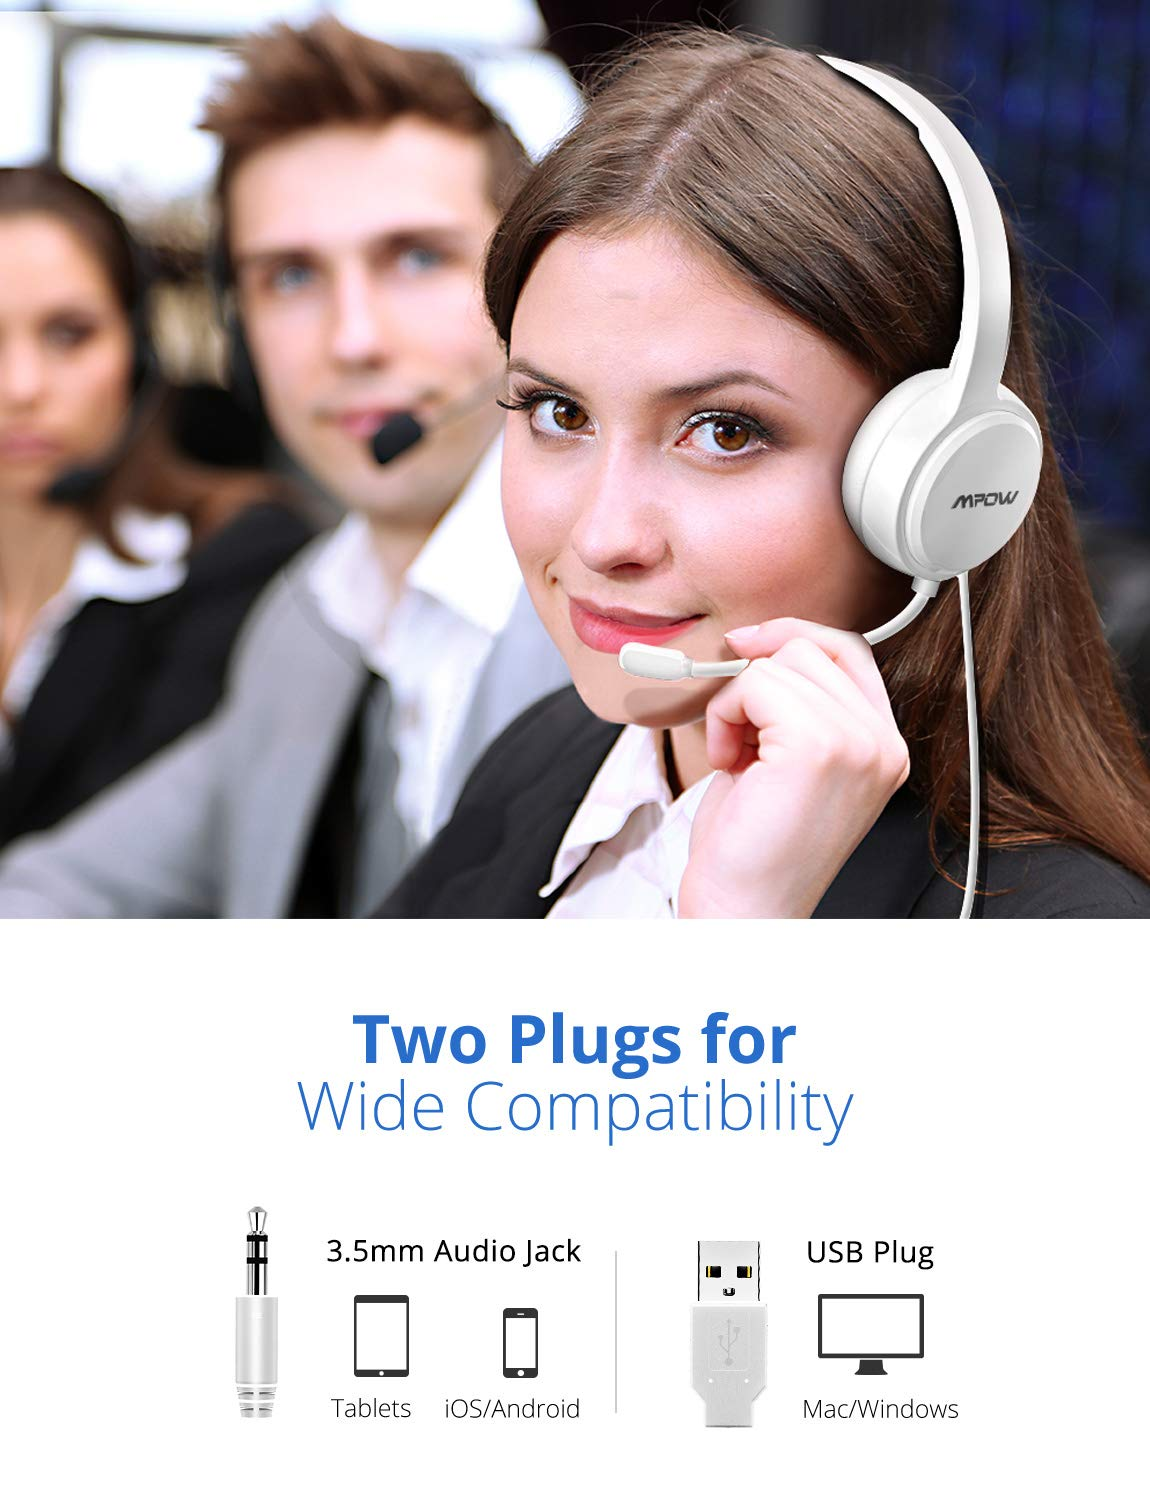 Skype Mpow 071-Upgraded Durability Version Lightweight Computer Headset with Noise Cancelling Microphone Phone Comfy Earmuffs USB Headset with 3.5mm Jack 7.87ft Wired Headphones for PC